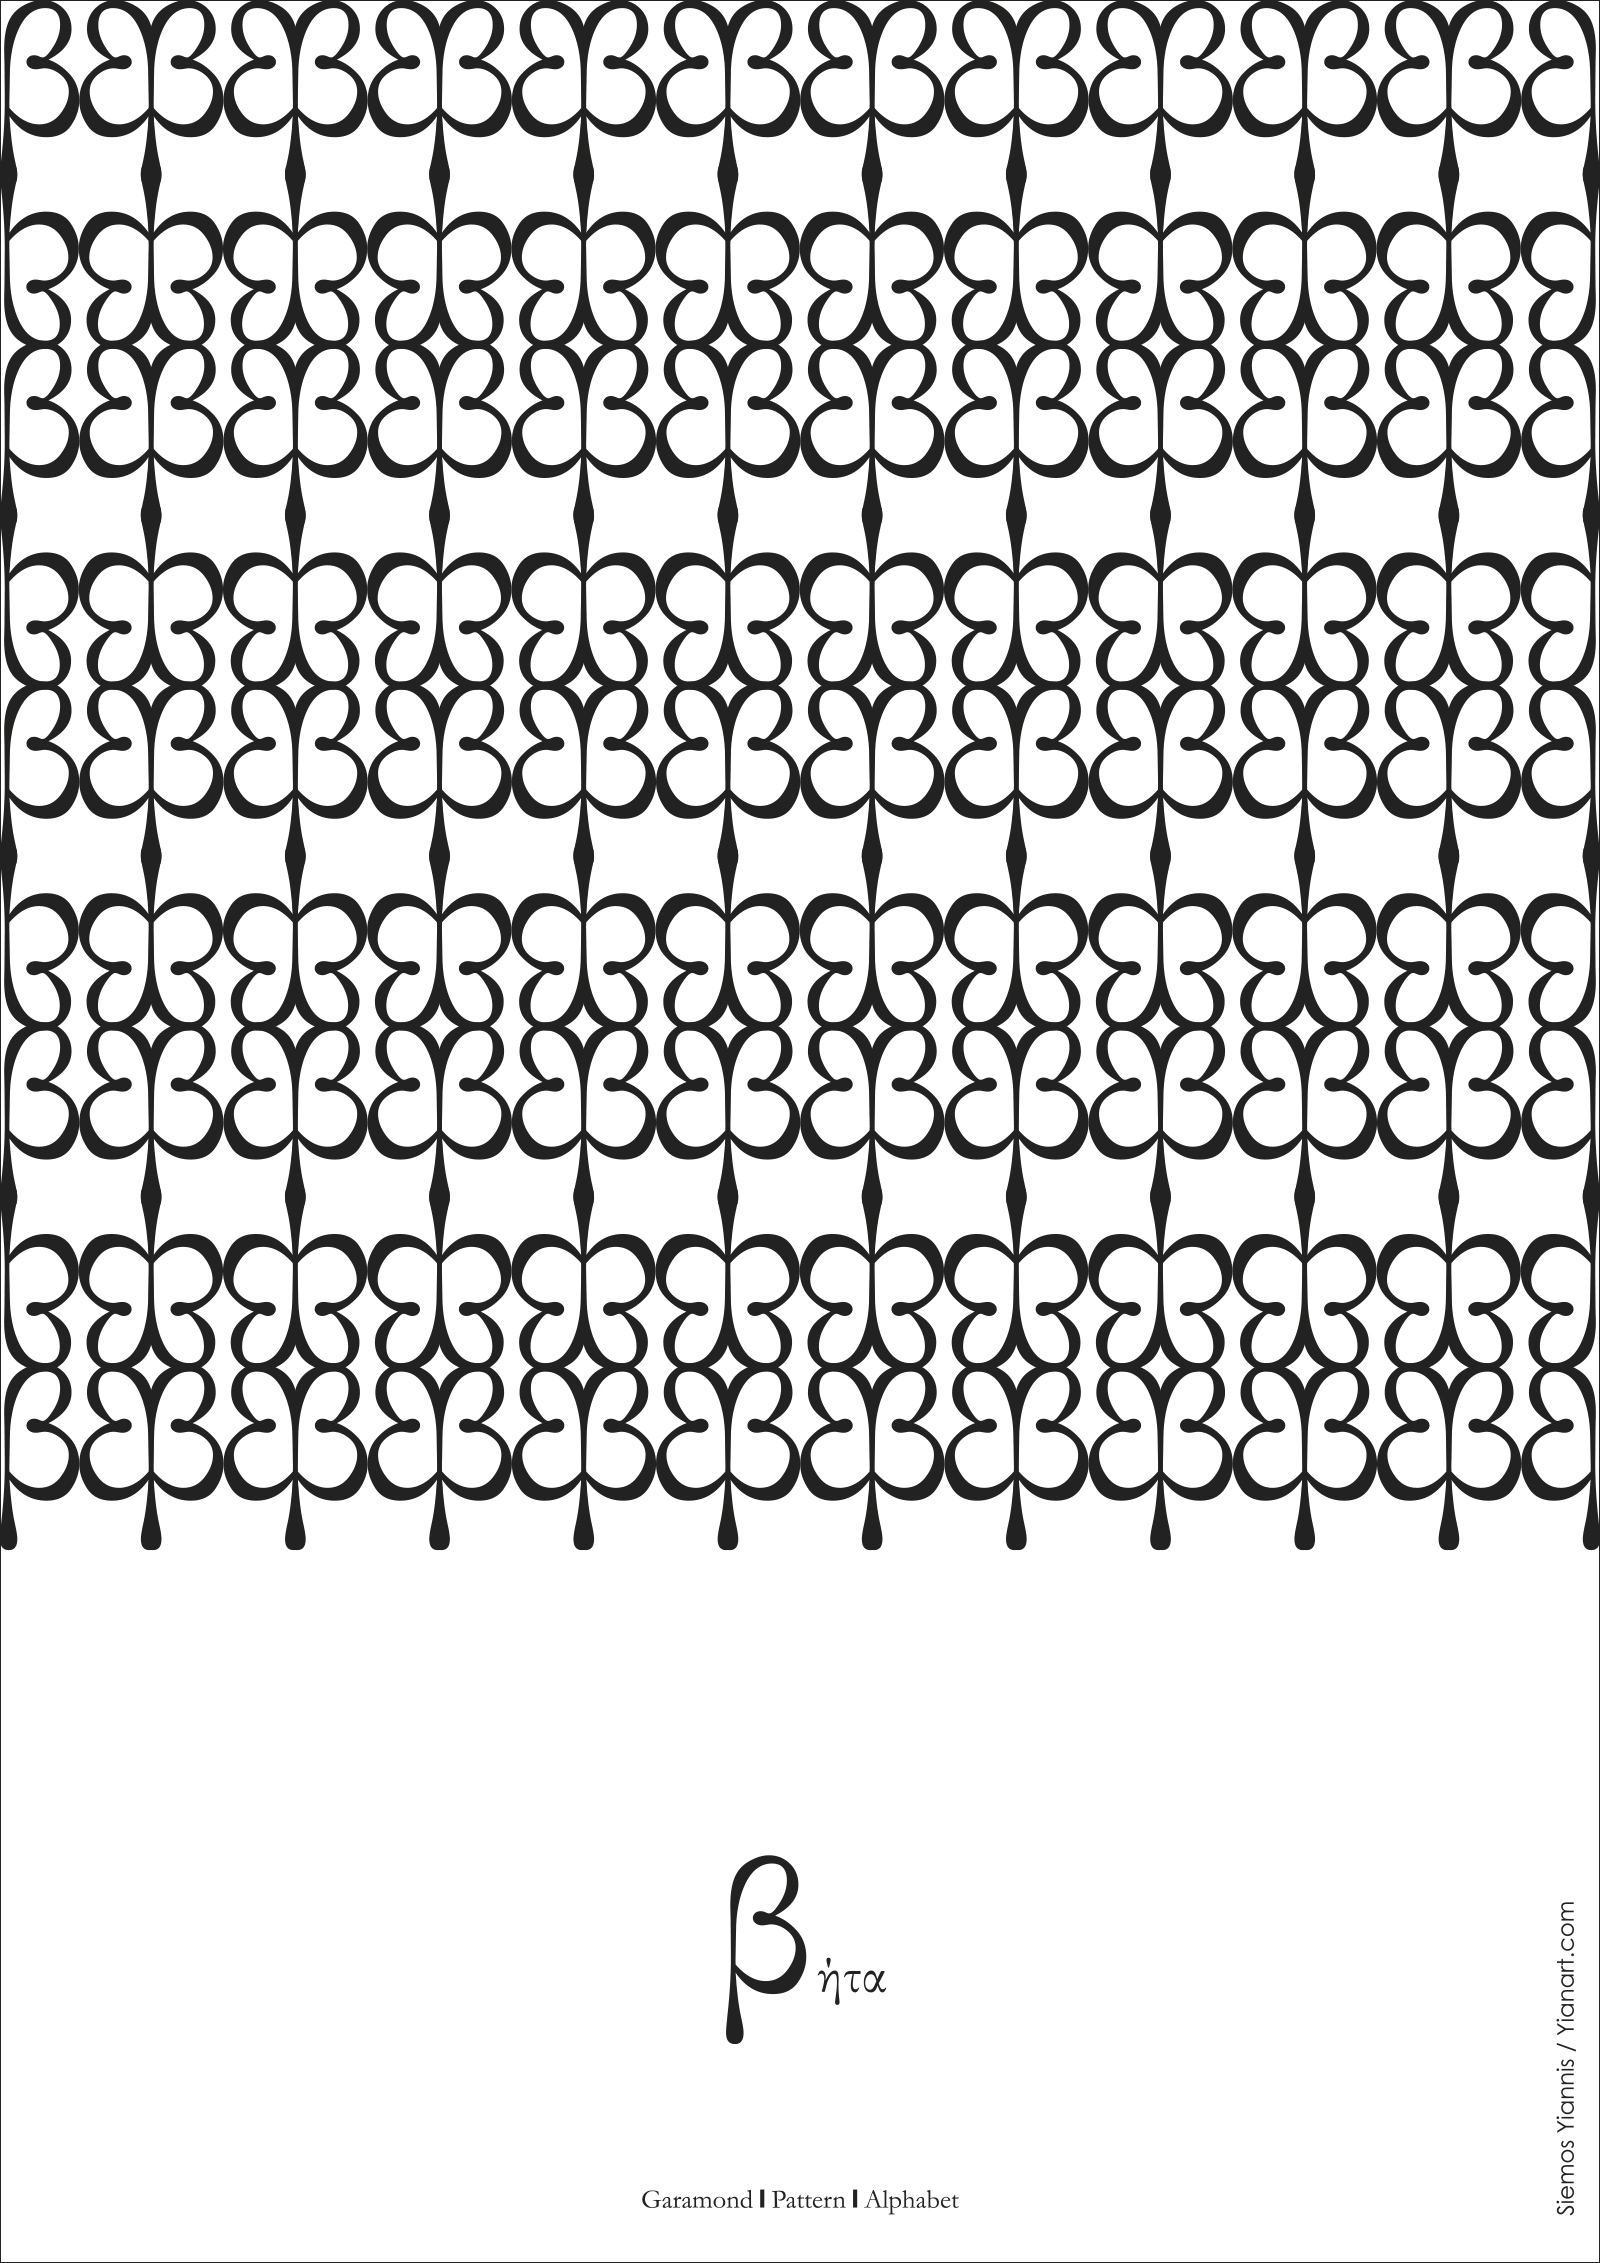 Greek Fonts Patterns_Beta2_Yianart